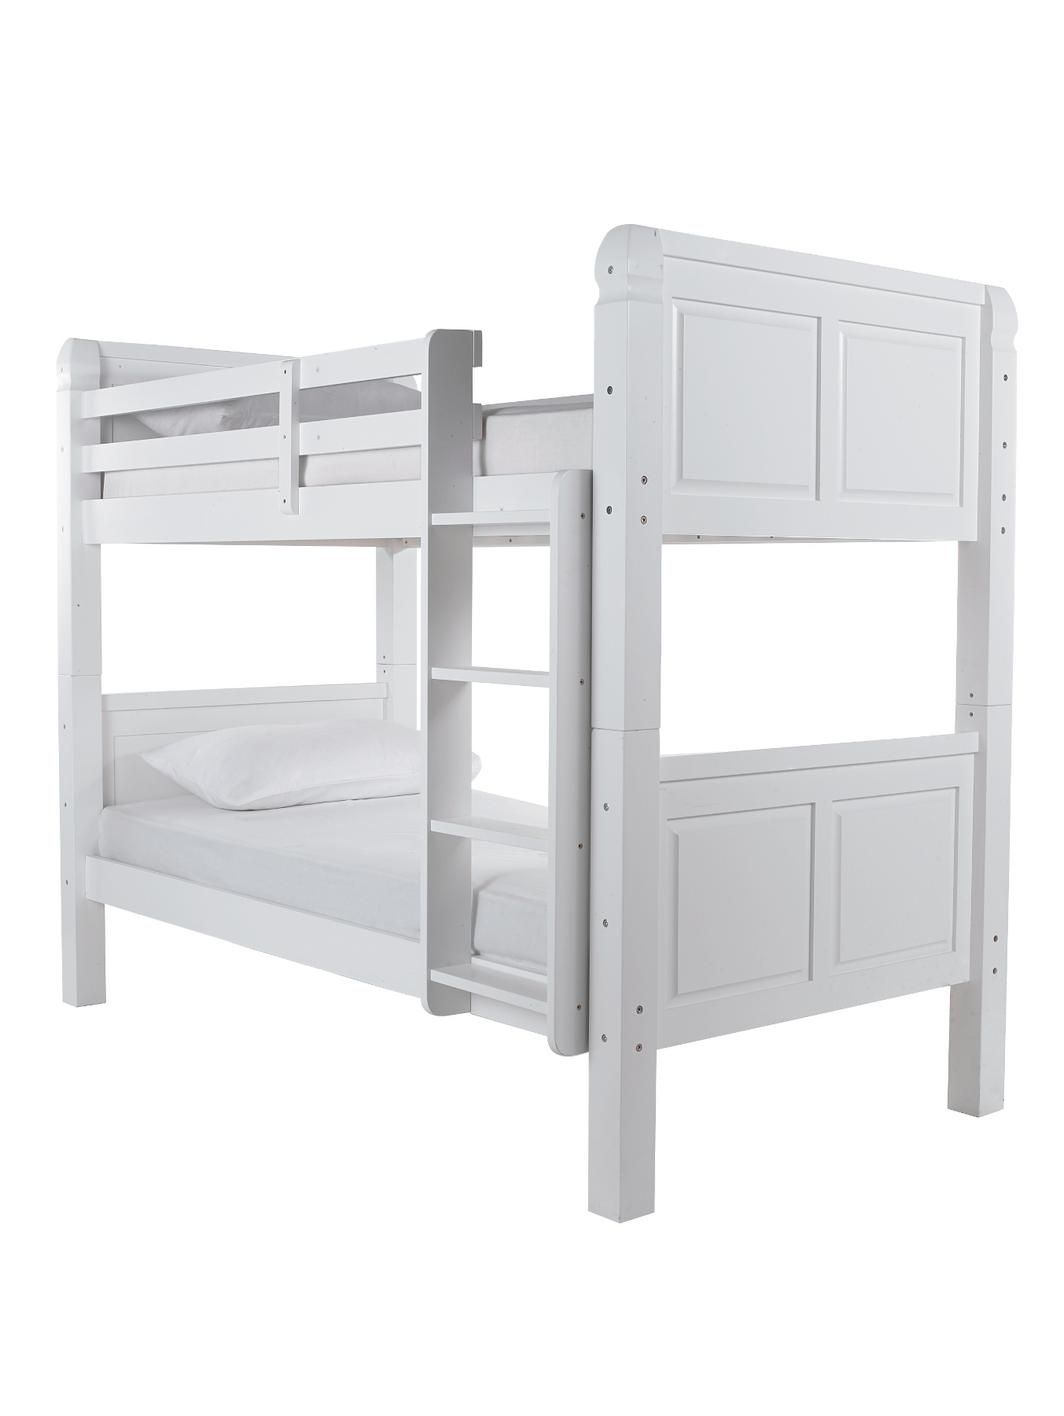 More bunk bed options - solid headboard and foot 2638ddd724